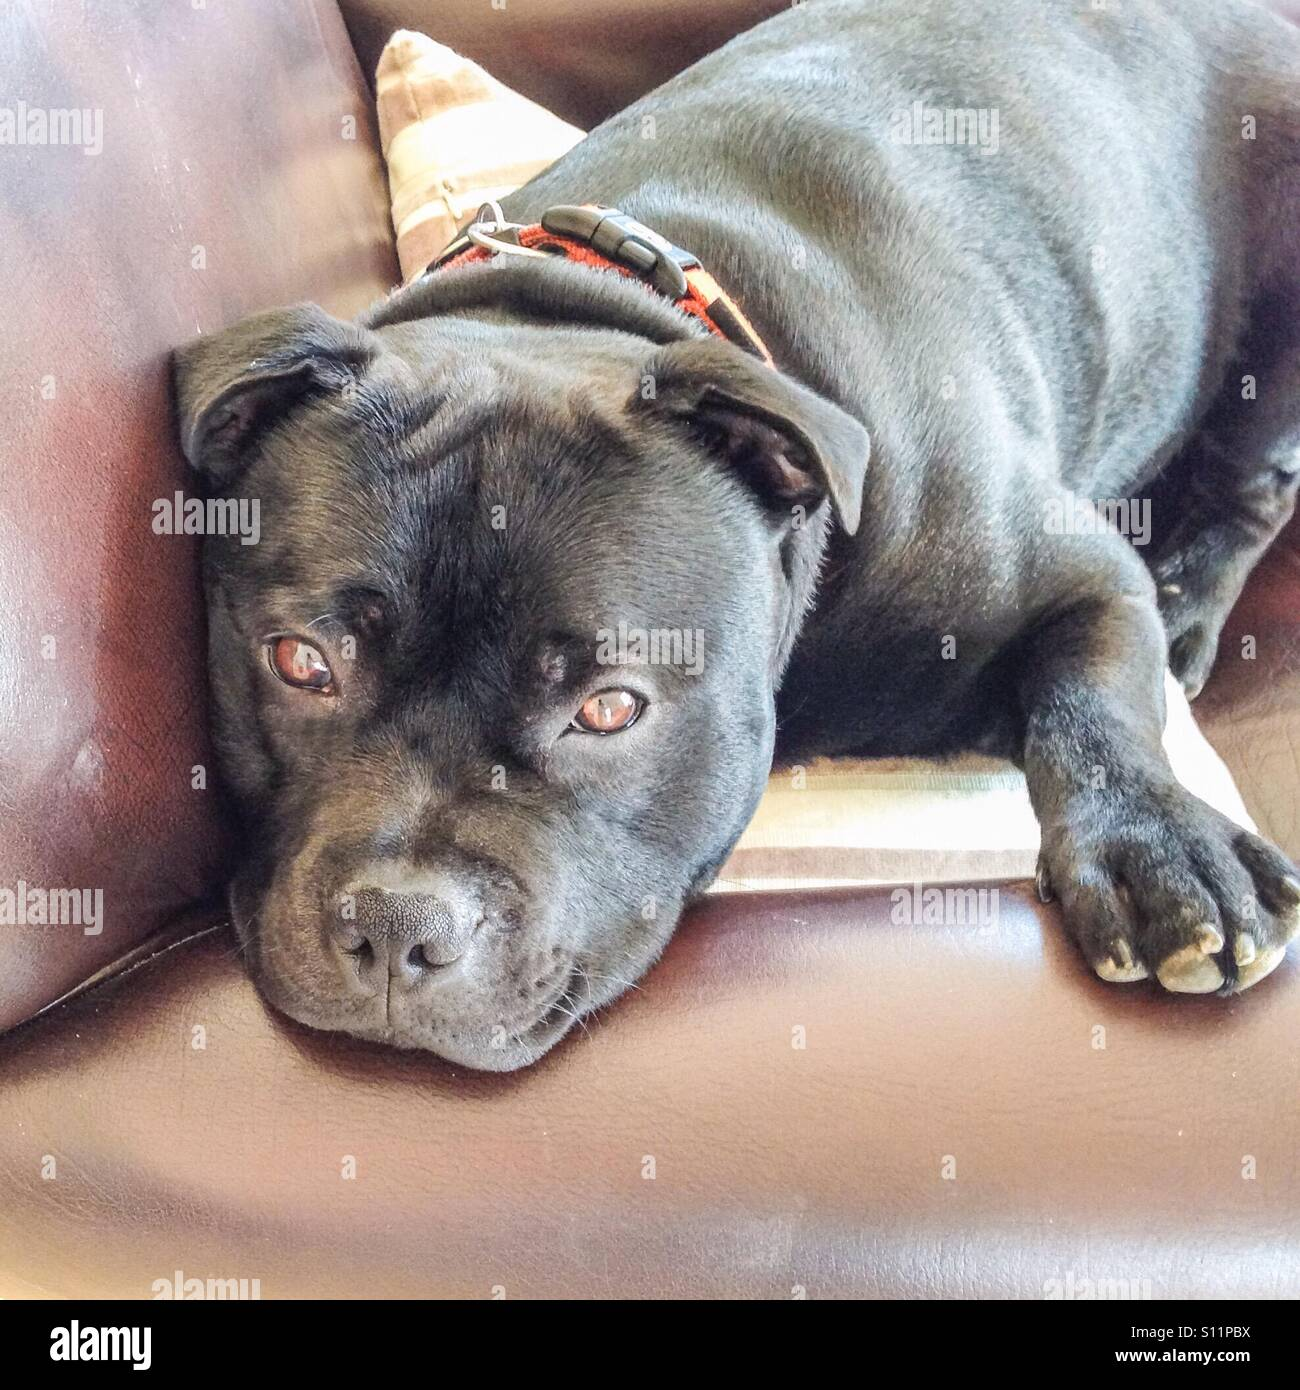 Staffordshire Bull Terrier dog with his head over the arm of a sofa chair looking soulfully at the camera because - Stock Image